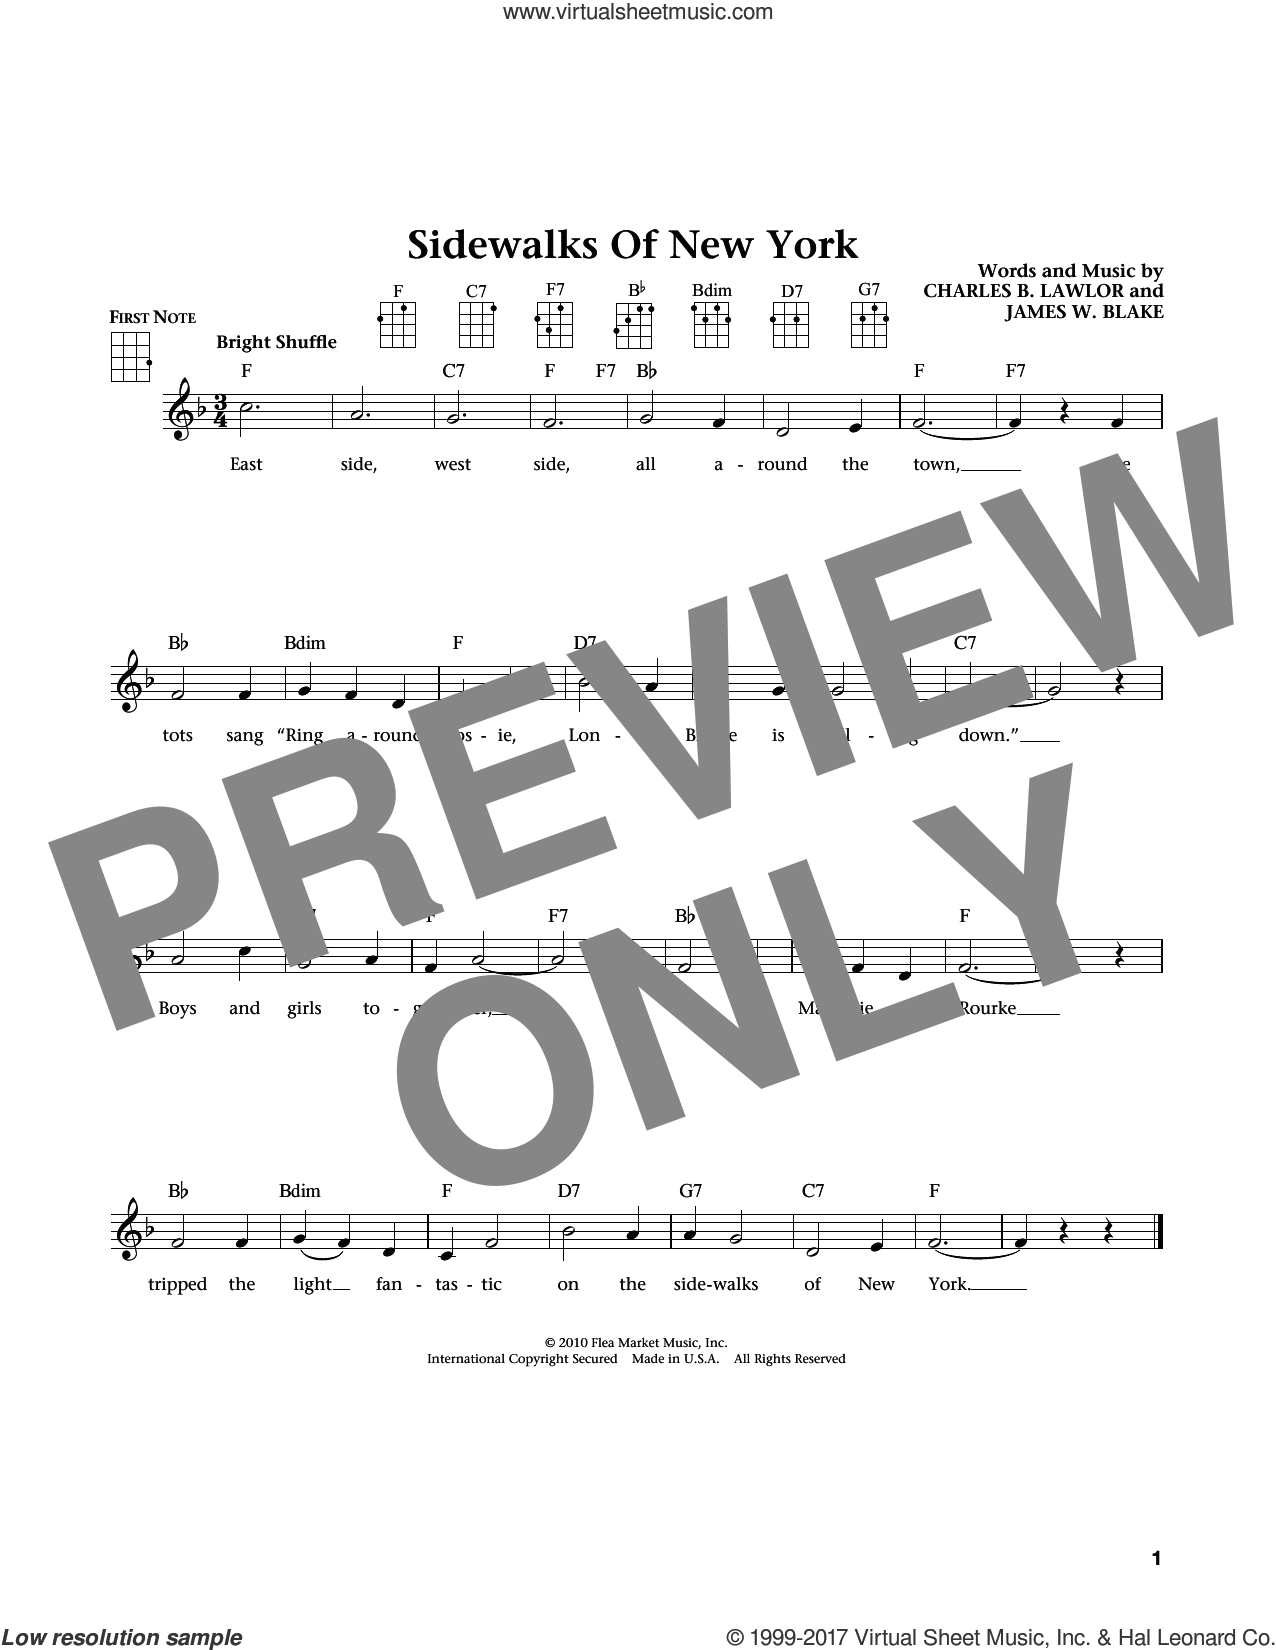 Sidewalks Of New York (from The Daily Ukulele) (arr. Liz and Jim Beloff) sheet music for ukulele by Eubie Blake, Jim Beloff, Liz Beloff and Charles B. Lawlor, intermediate skill level